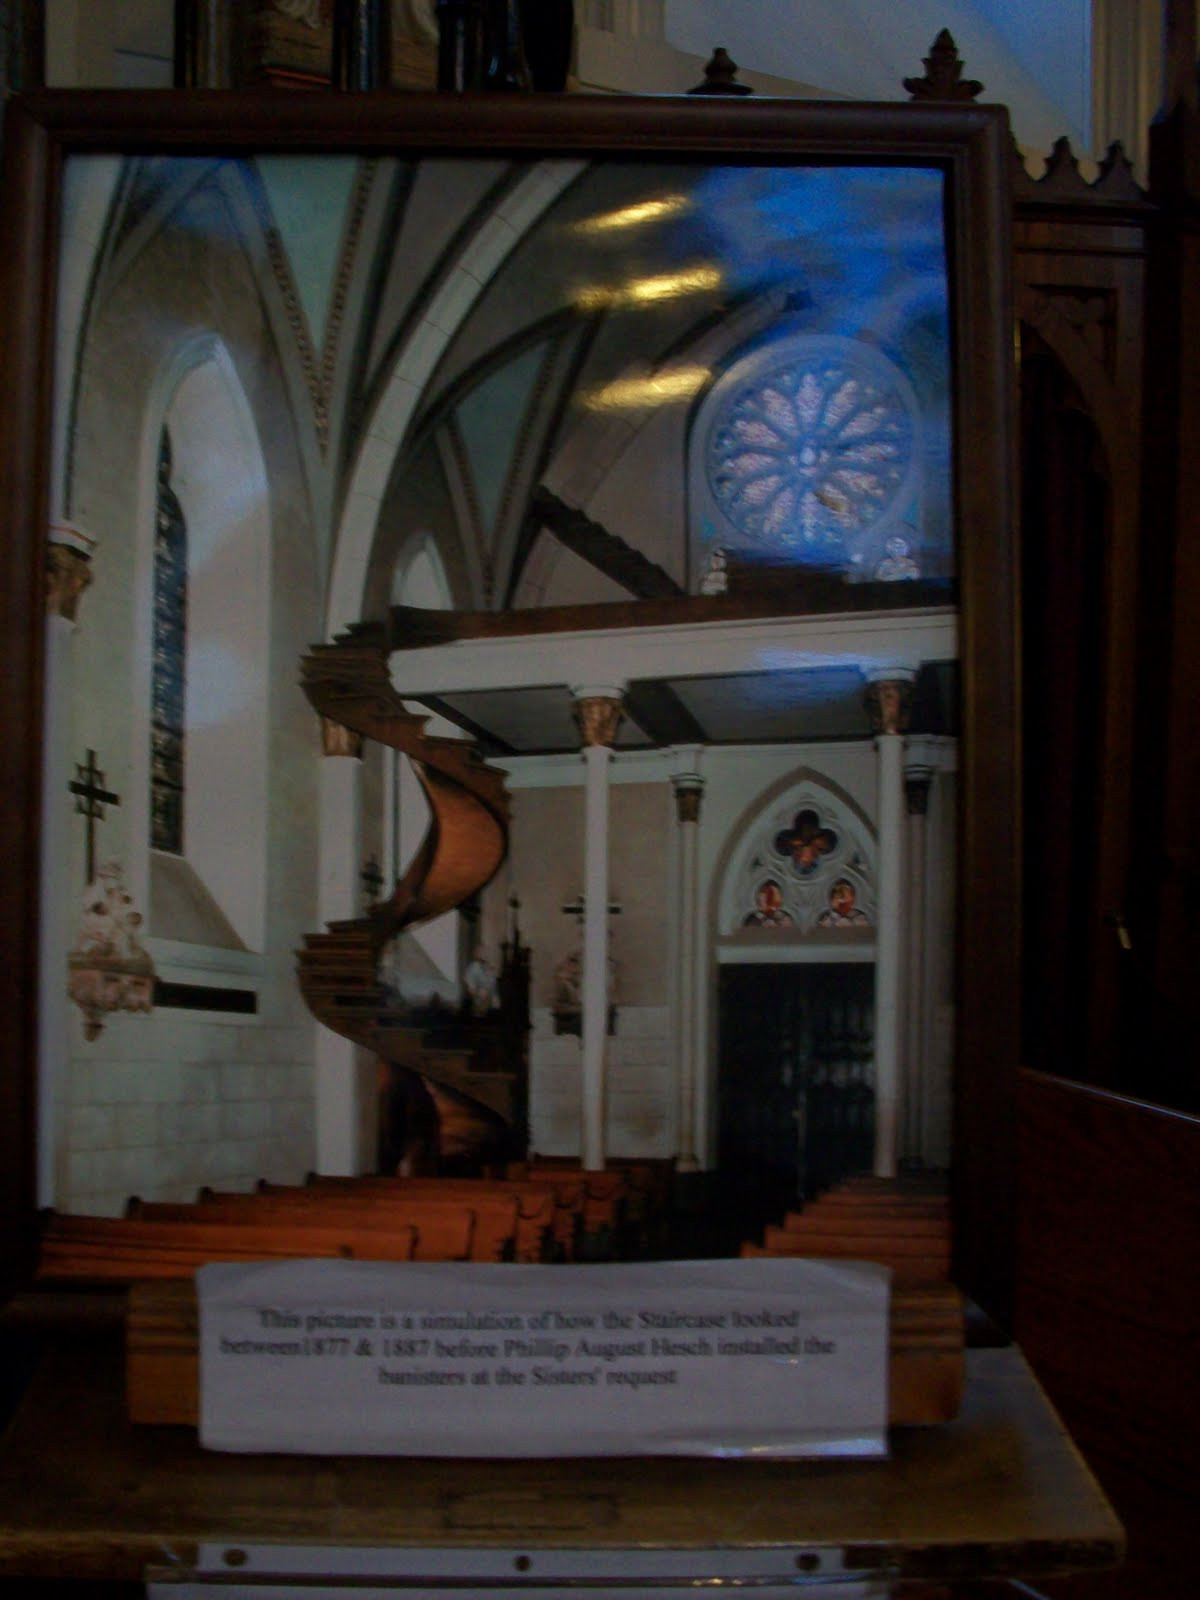 Best ideas about Loretto Chapel Staircase Explained . Save or Pin Artylu Travels 2010 Grand Canyon to Santa Fe NM Now.